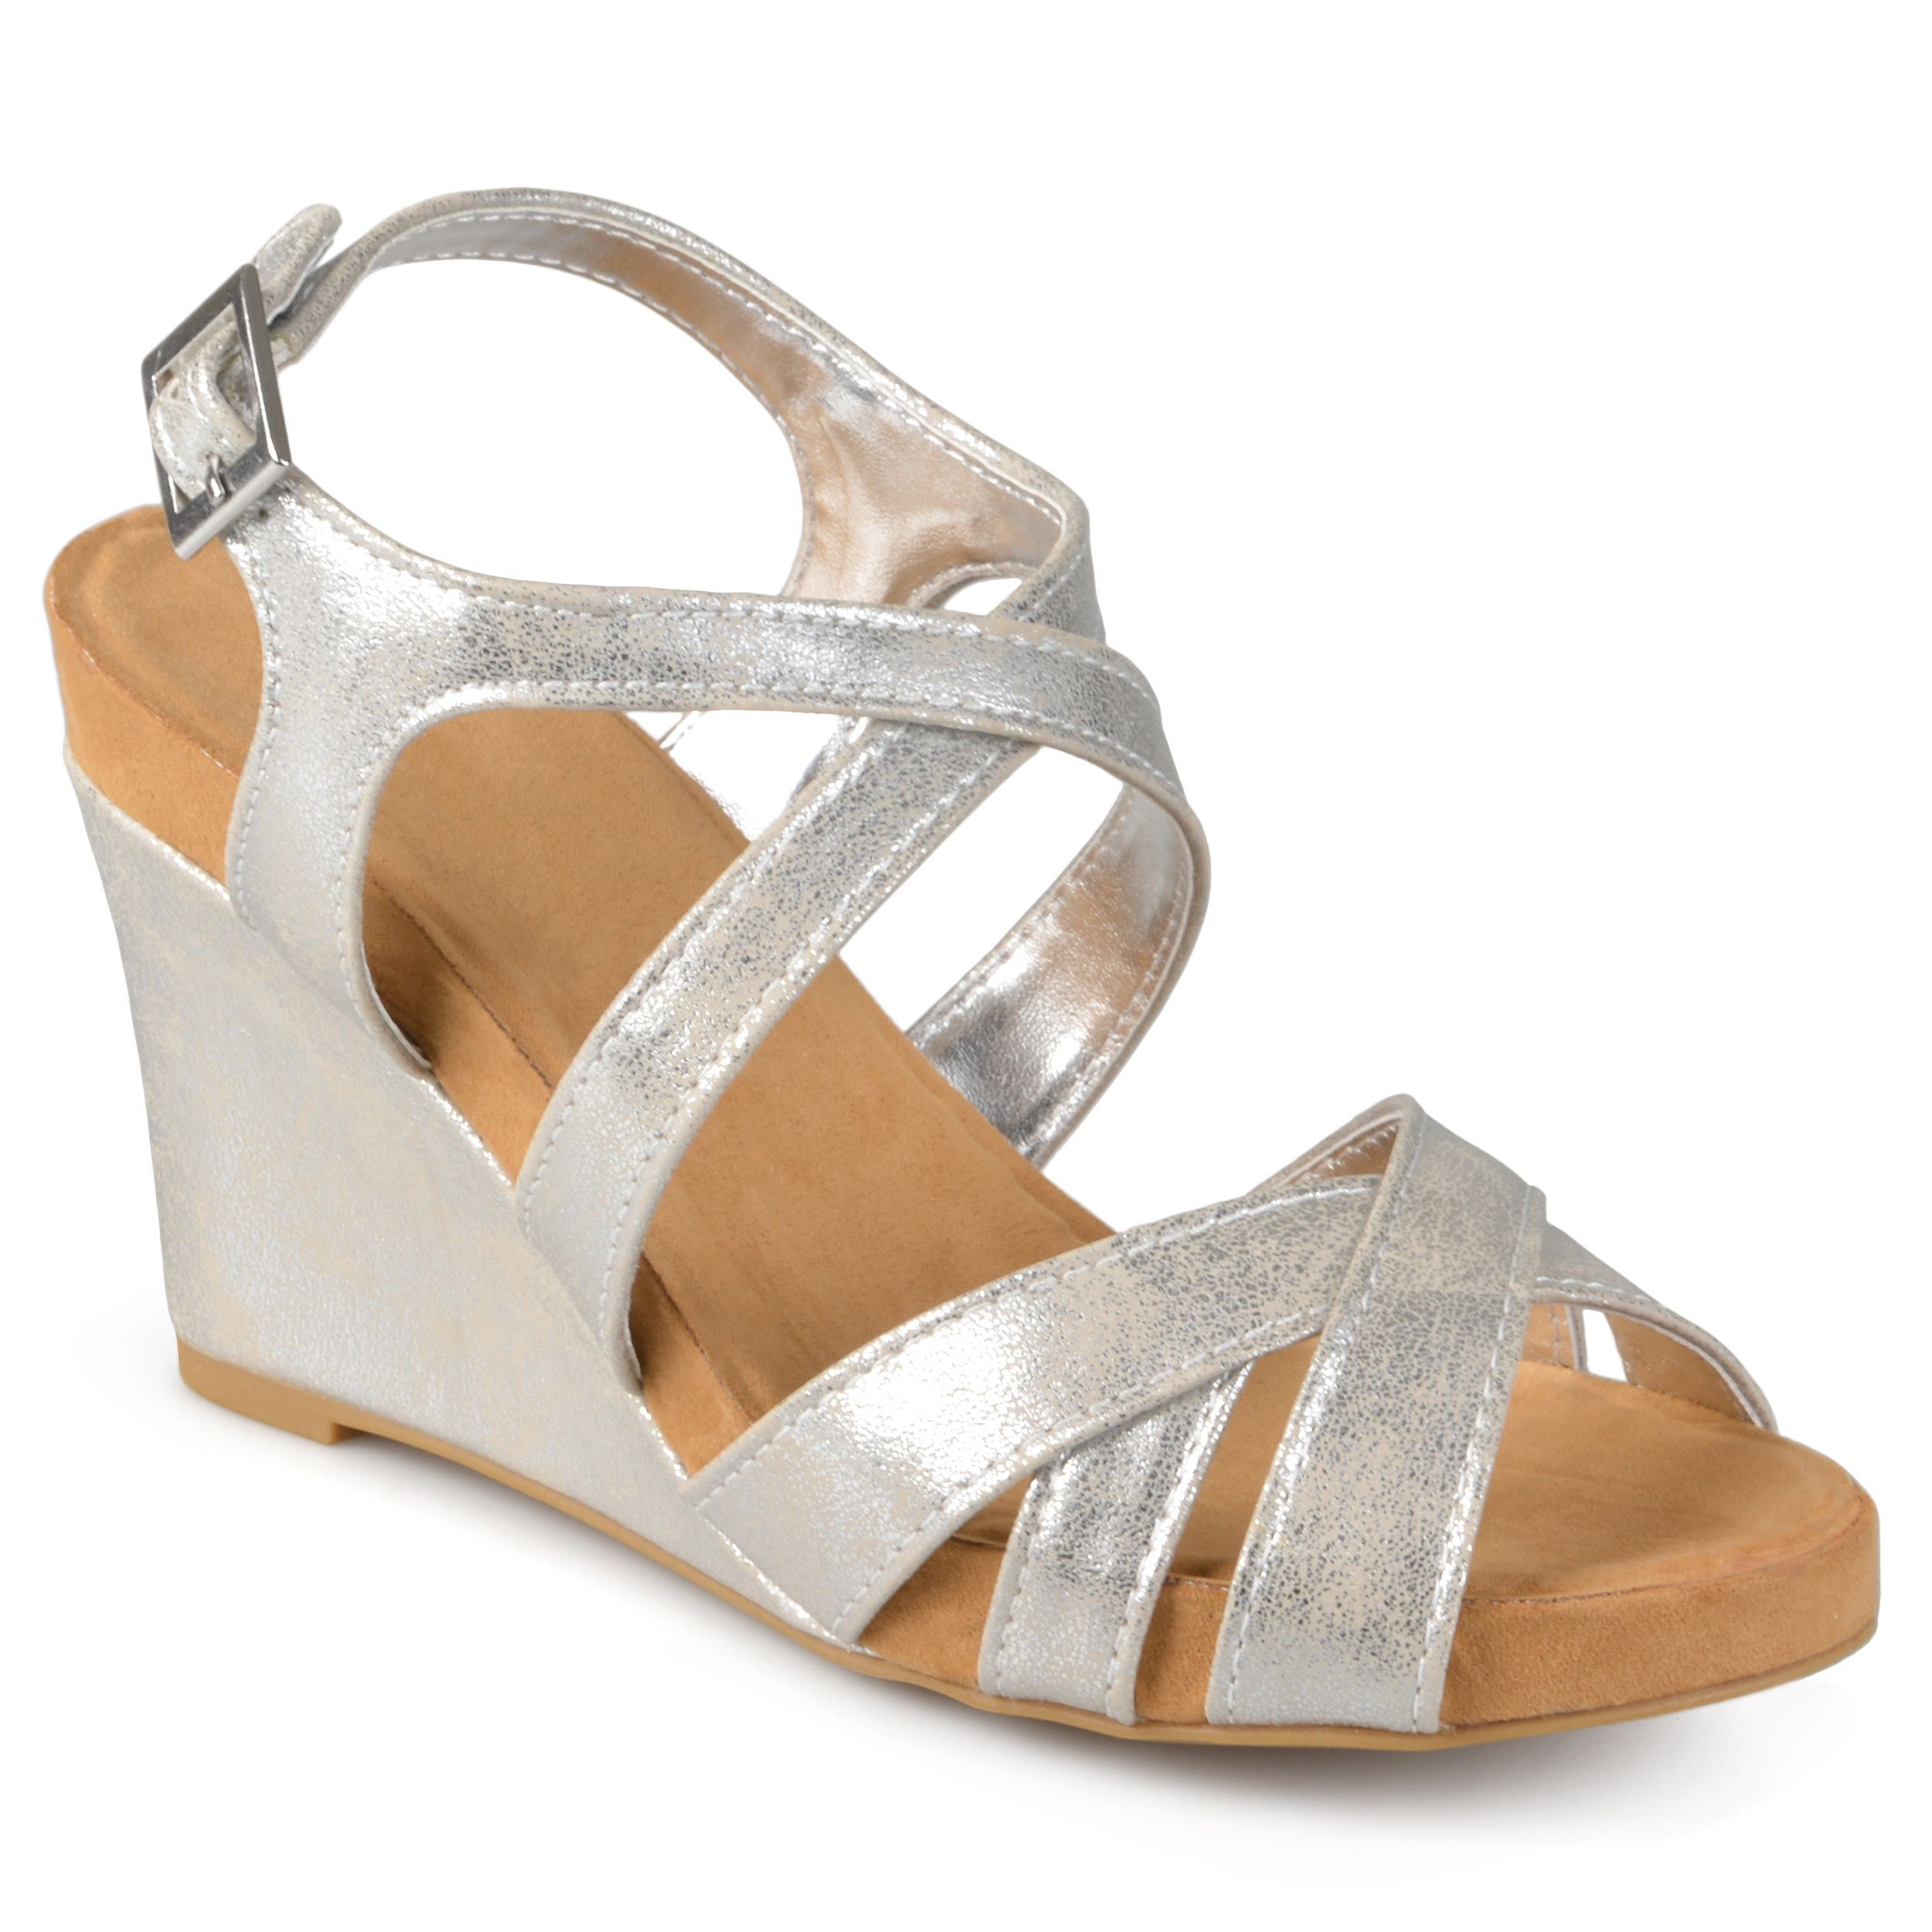 gh in sandal bass metallic fullscreen lyst comforter view sandals g louisa h co shoes comfort wedge